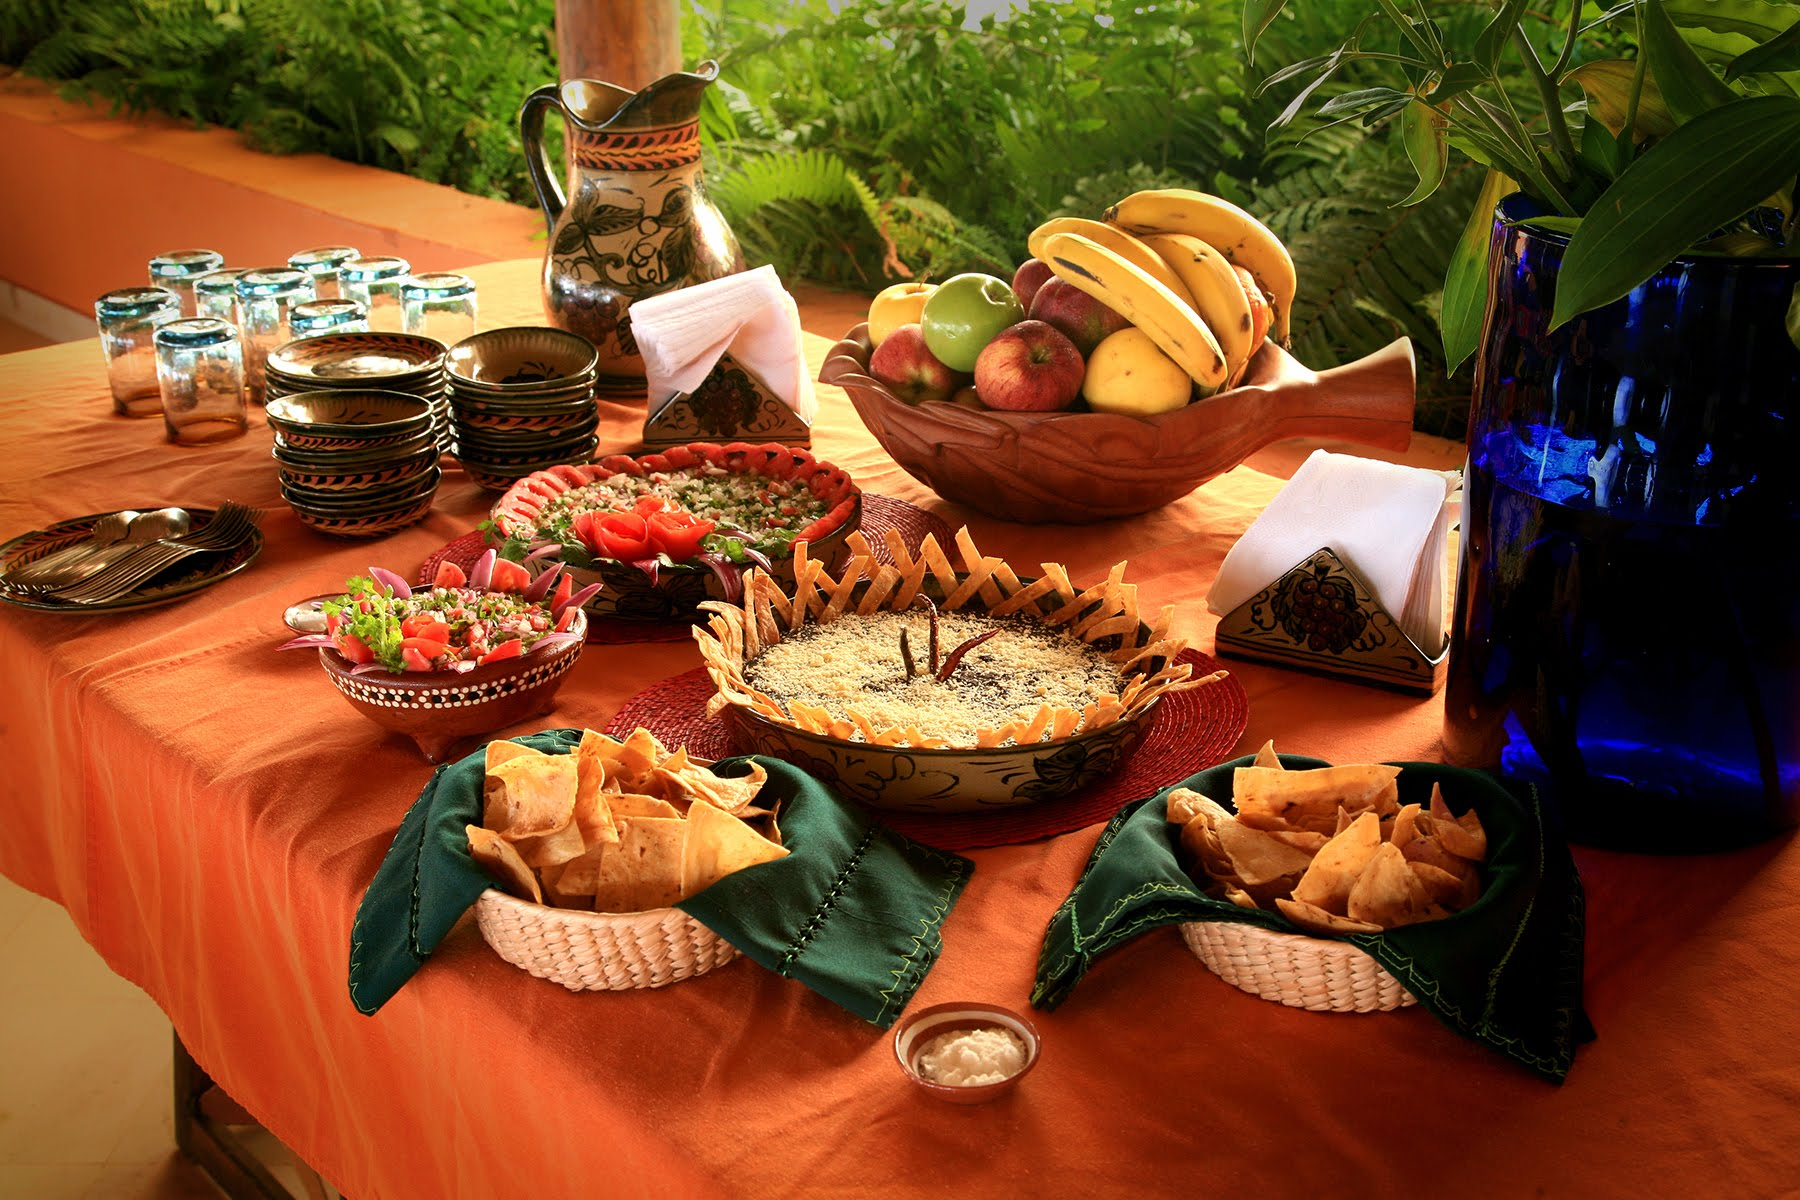 Haramara staff takes great pride in catering to all your dietary needs/ restrictions. All gluten free. Strict vegetarian/ vegan upon request.